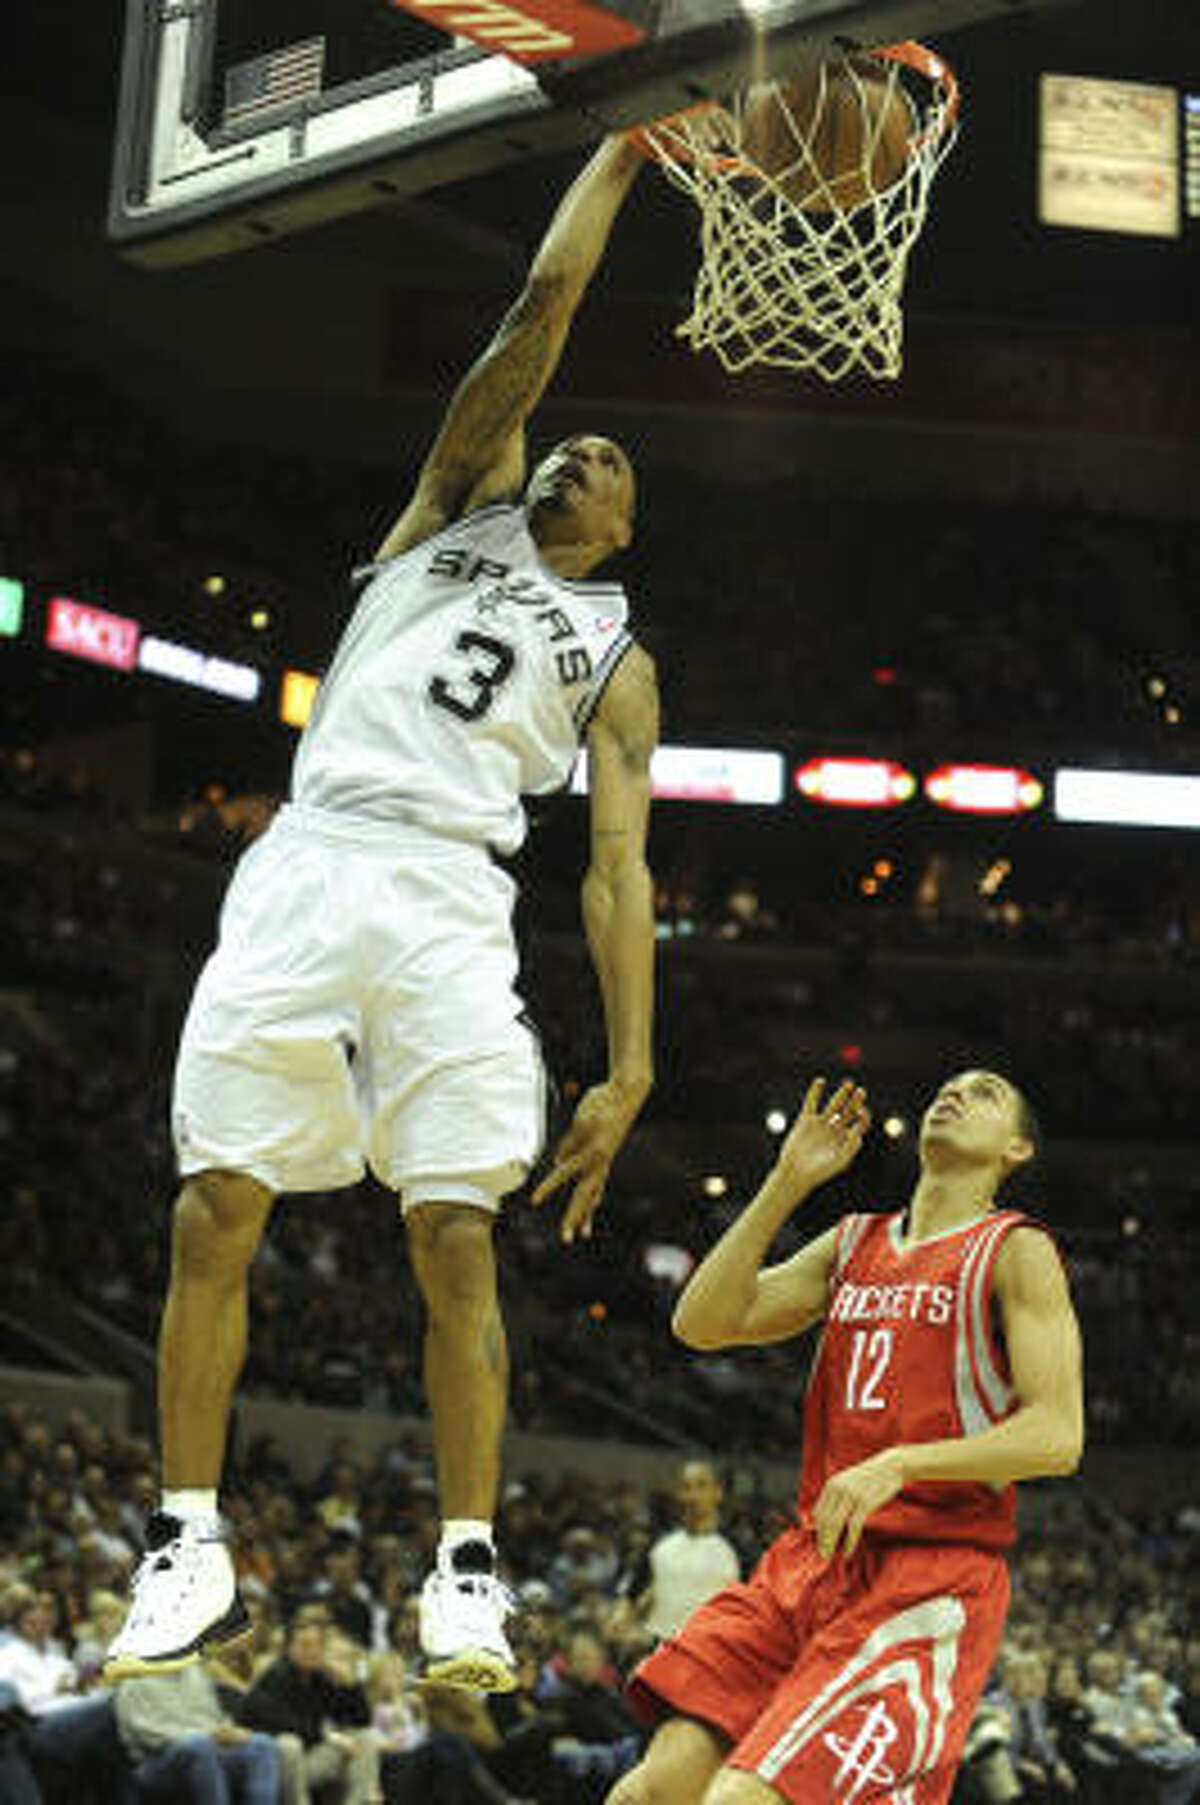 San Antonio's George Hill dunks to end a breakaway as Rockets guard Kevin Martin gives chase.